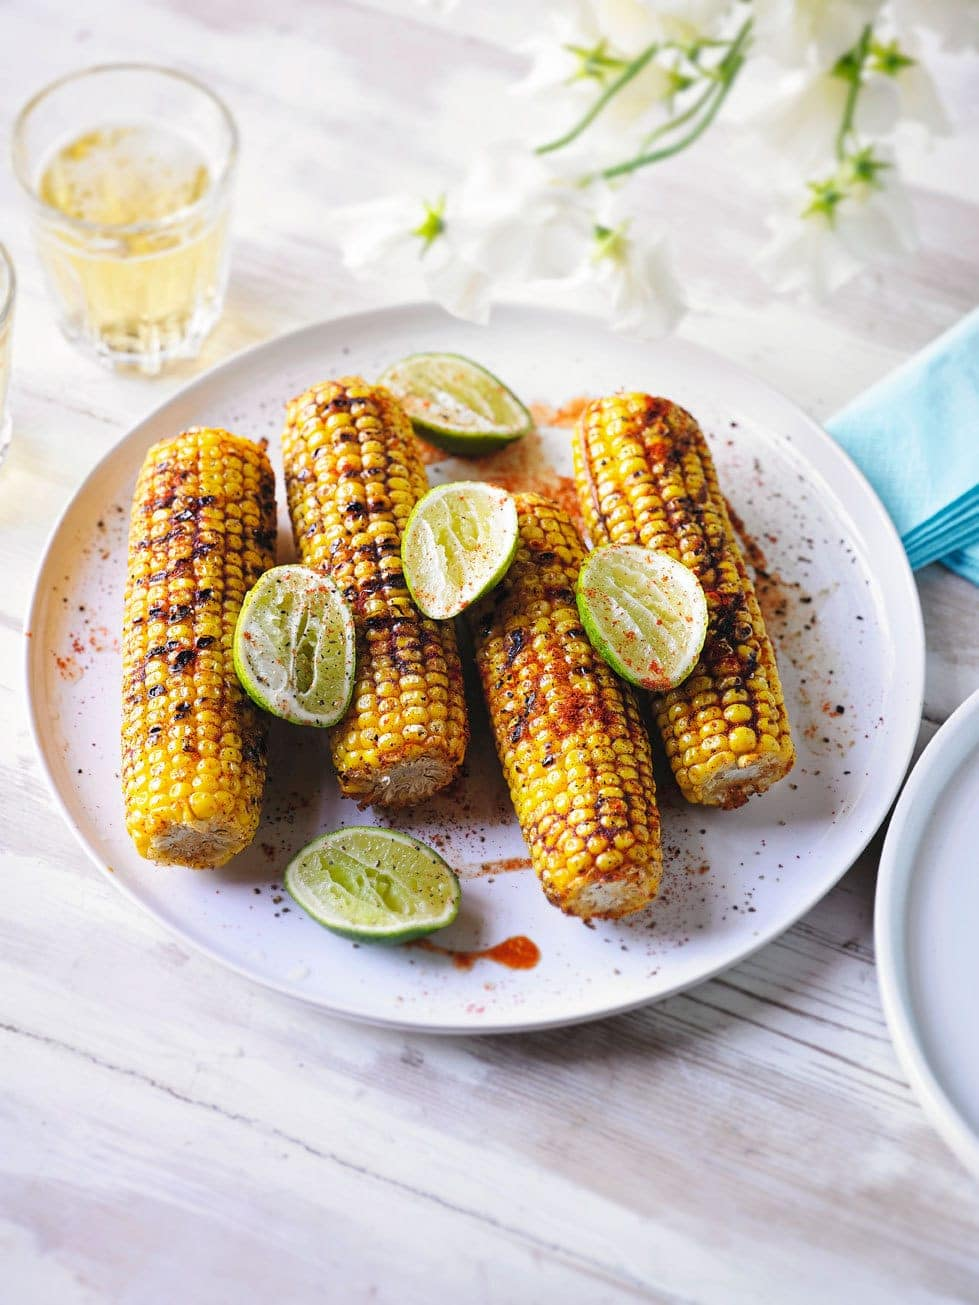 Barbecued Sweetcorn with a Smoky Rub 1